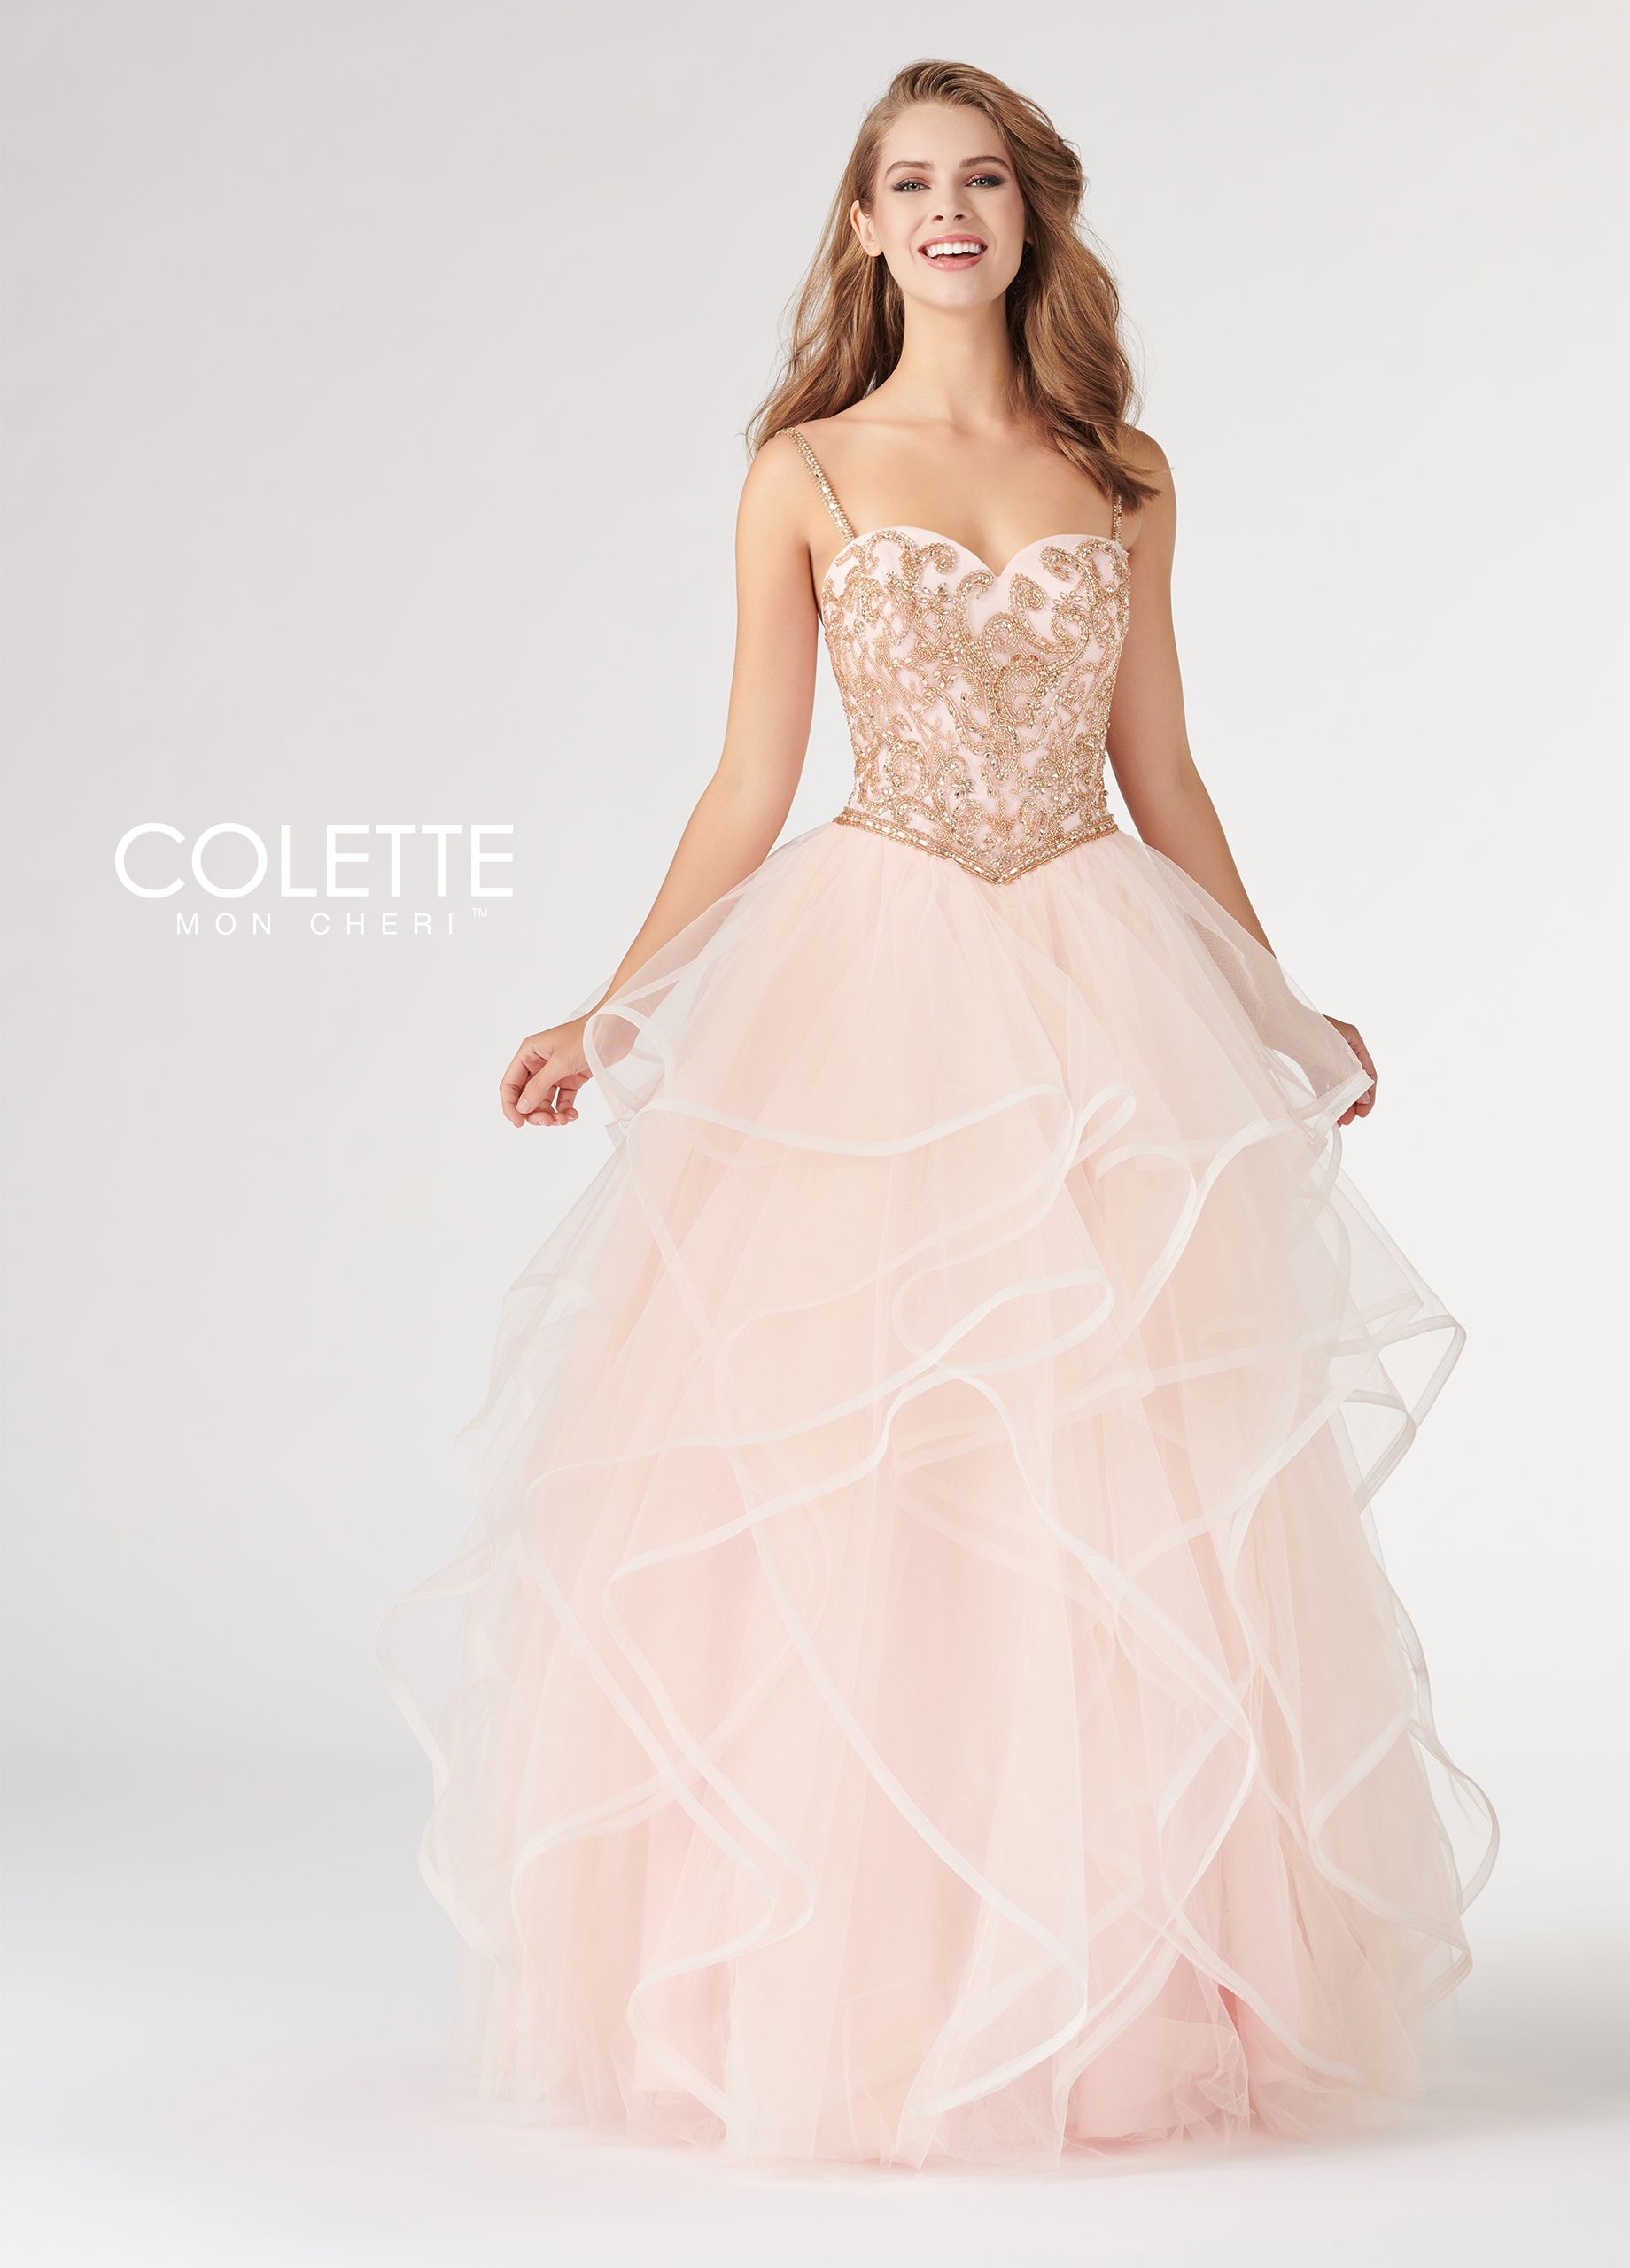 0f2d94d775d Colette for Mon Cheri CL19886 - Sleeveless tulle ballgown with a sweetheart  neckline